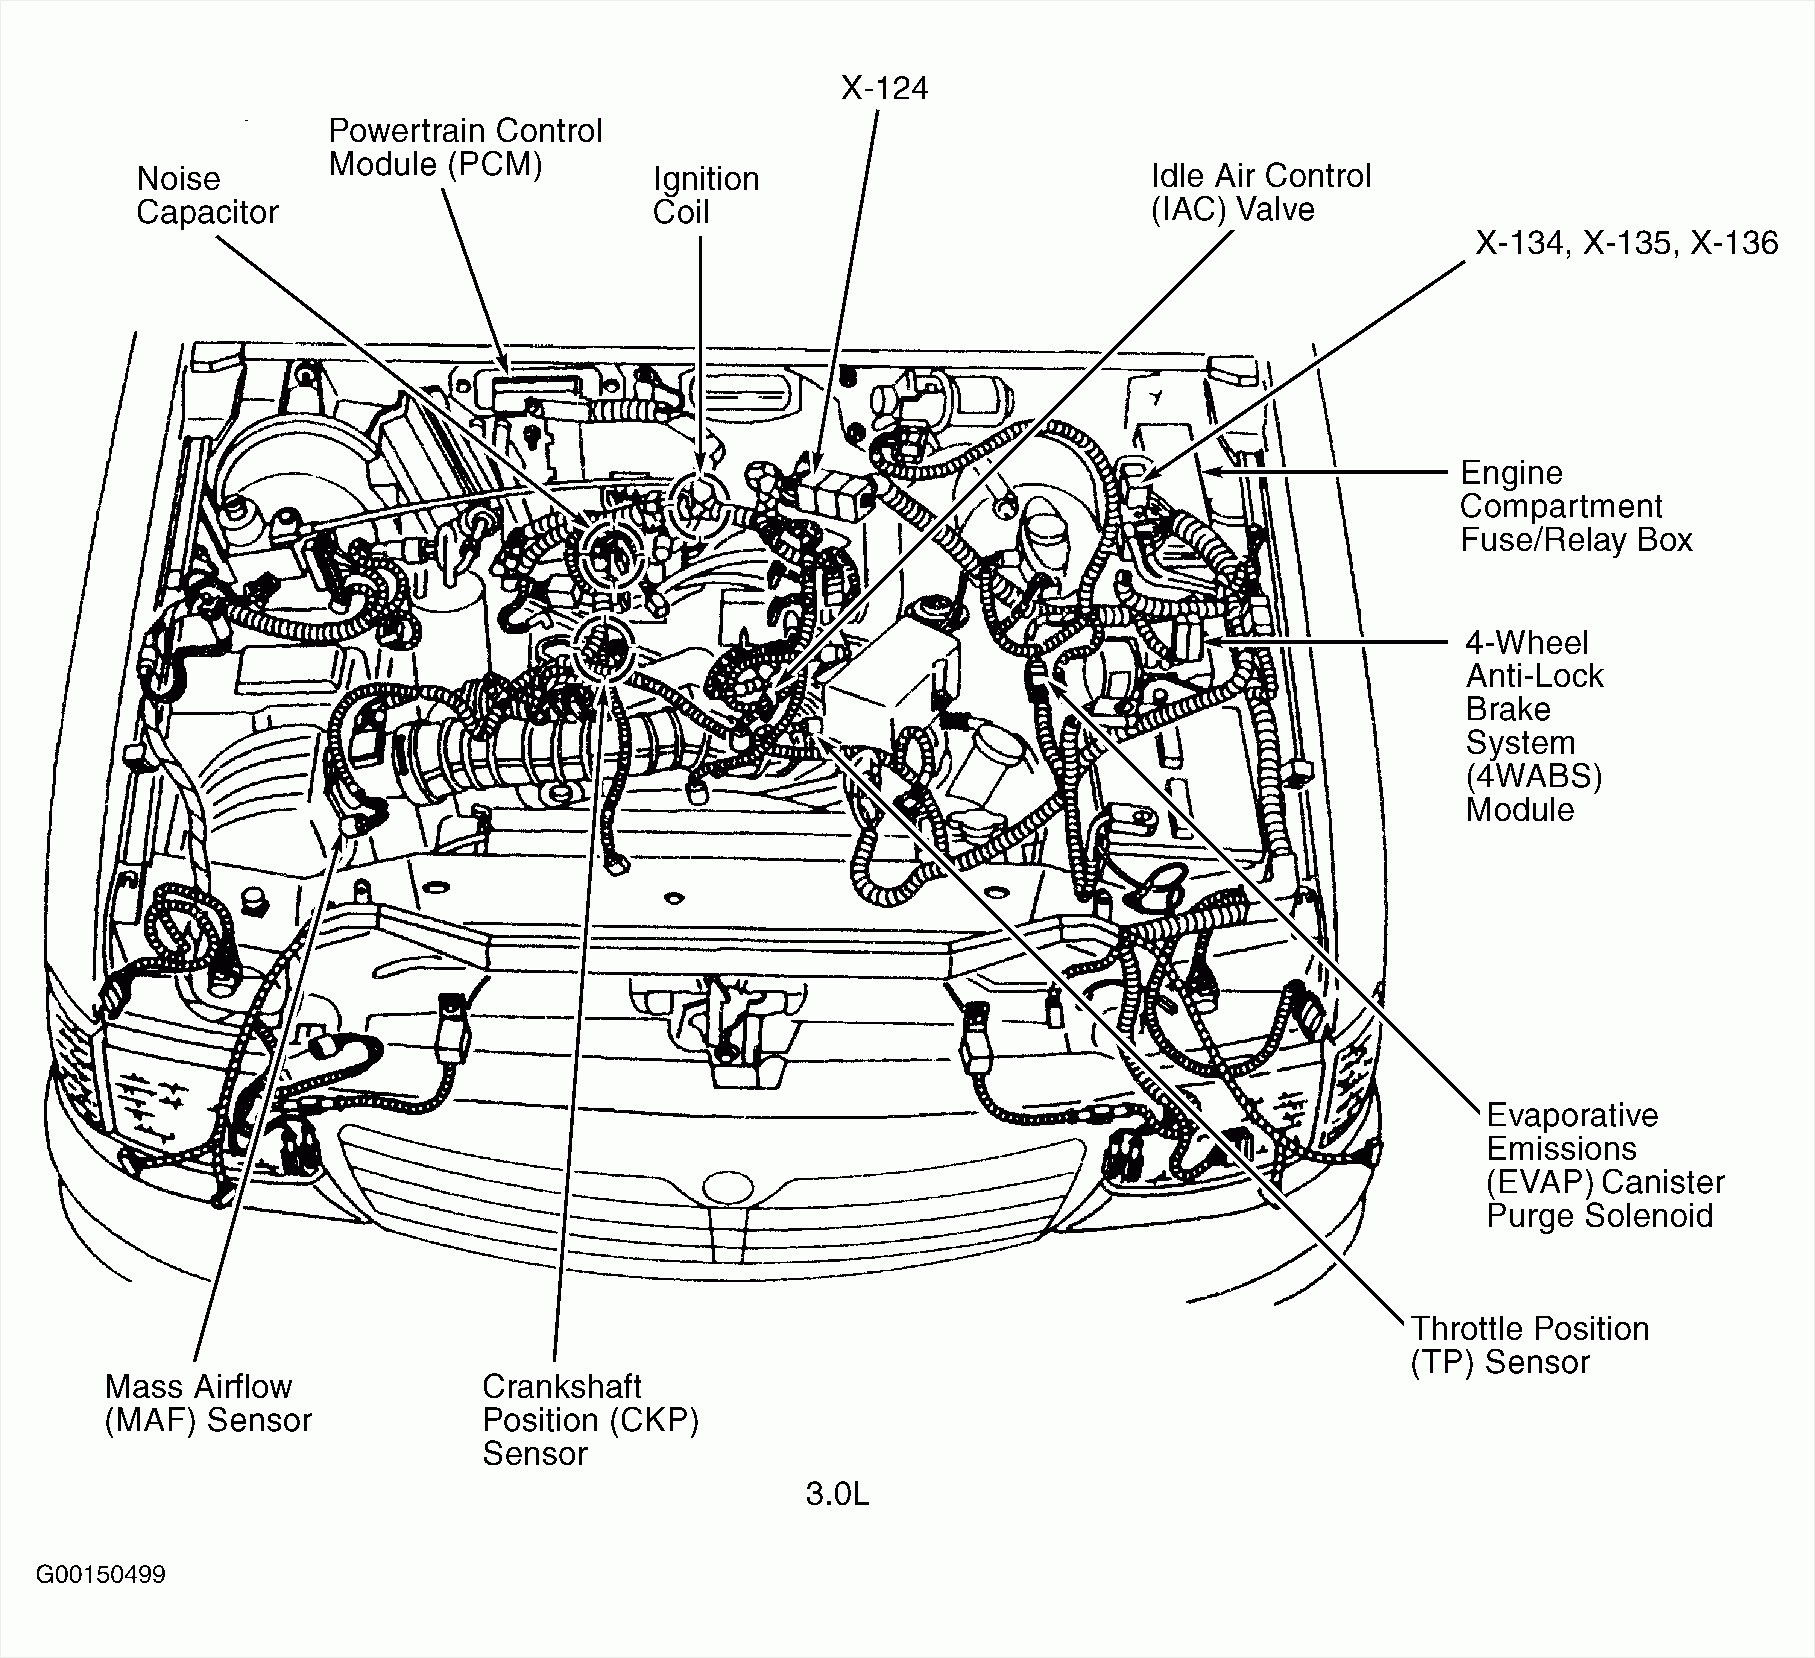 1997 Pontiac Firebird Engine Diagram Great Installation Of Wiring 1993 99 Montana 3 4 Schematic Diagrams Rh 46 Koch Foerderbandtrommeln De 1999 2001